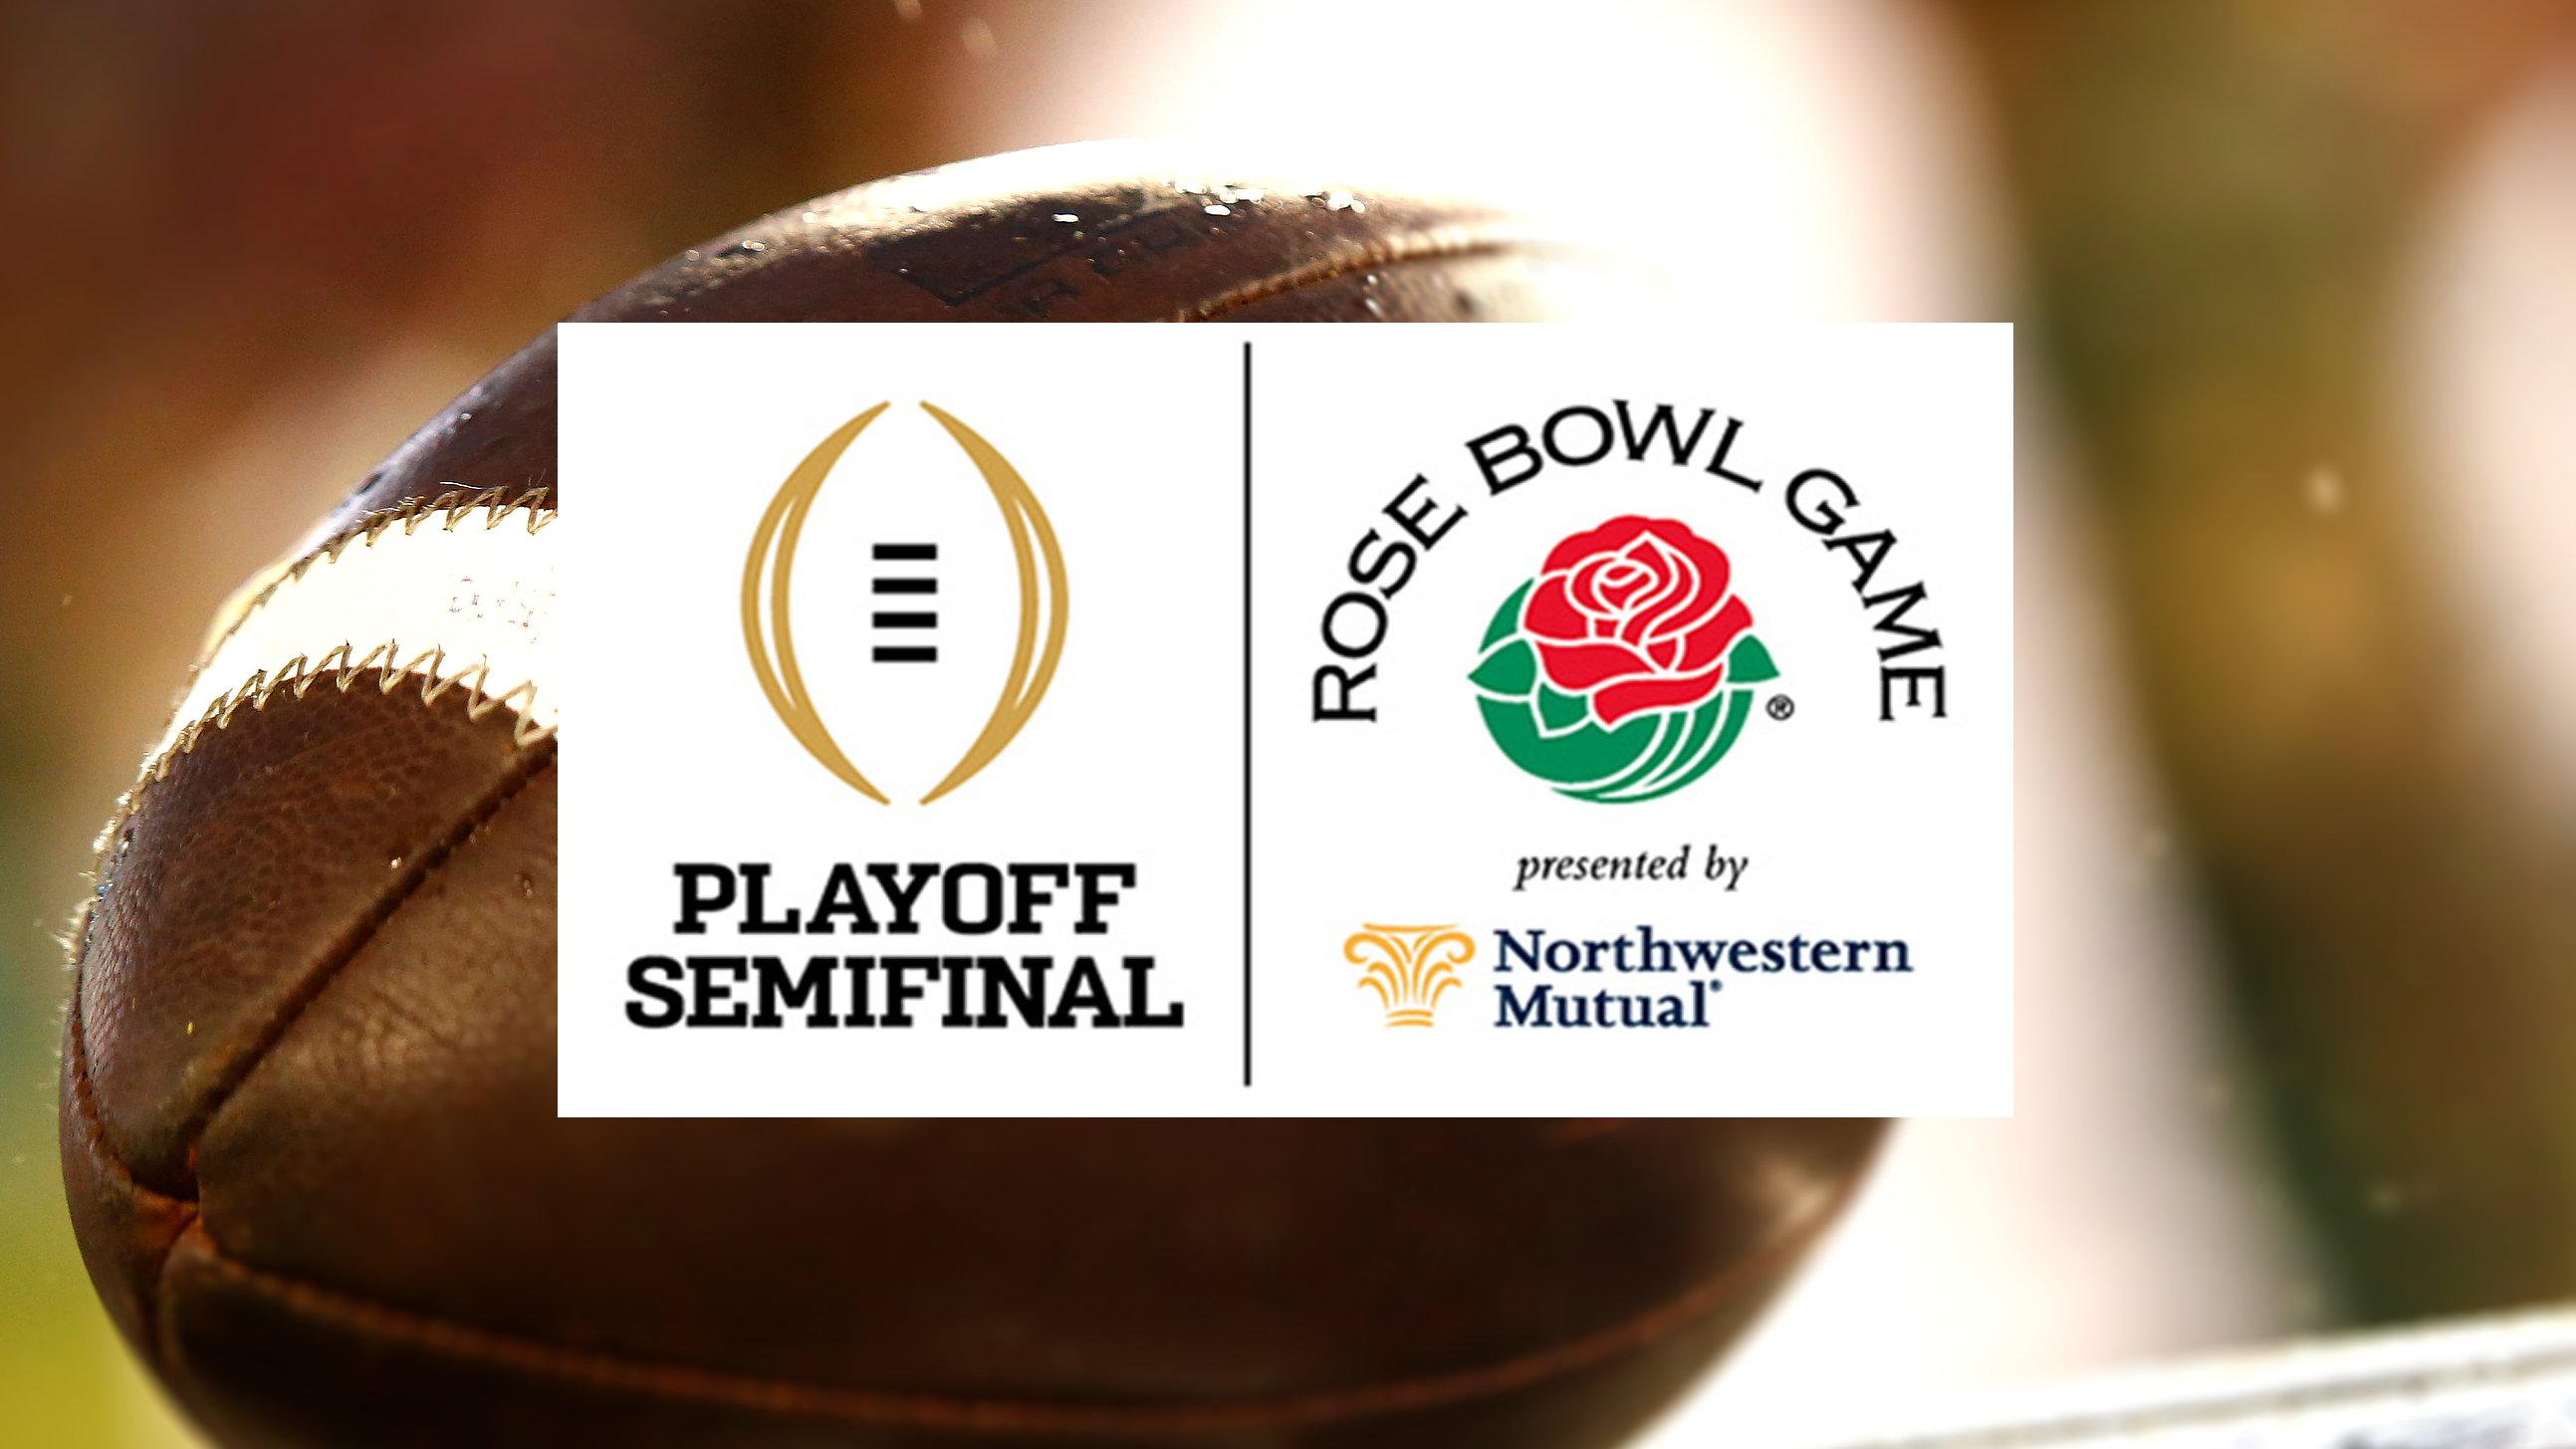 http://content.11alive.com/photo/2017/12/04/rose-bowl-semifinal1204_1512418395469_11870513_ver1.0.png